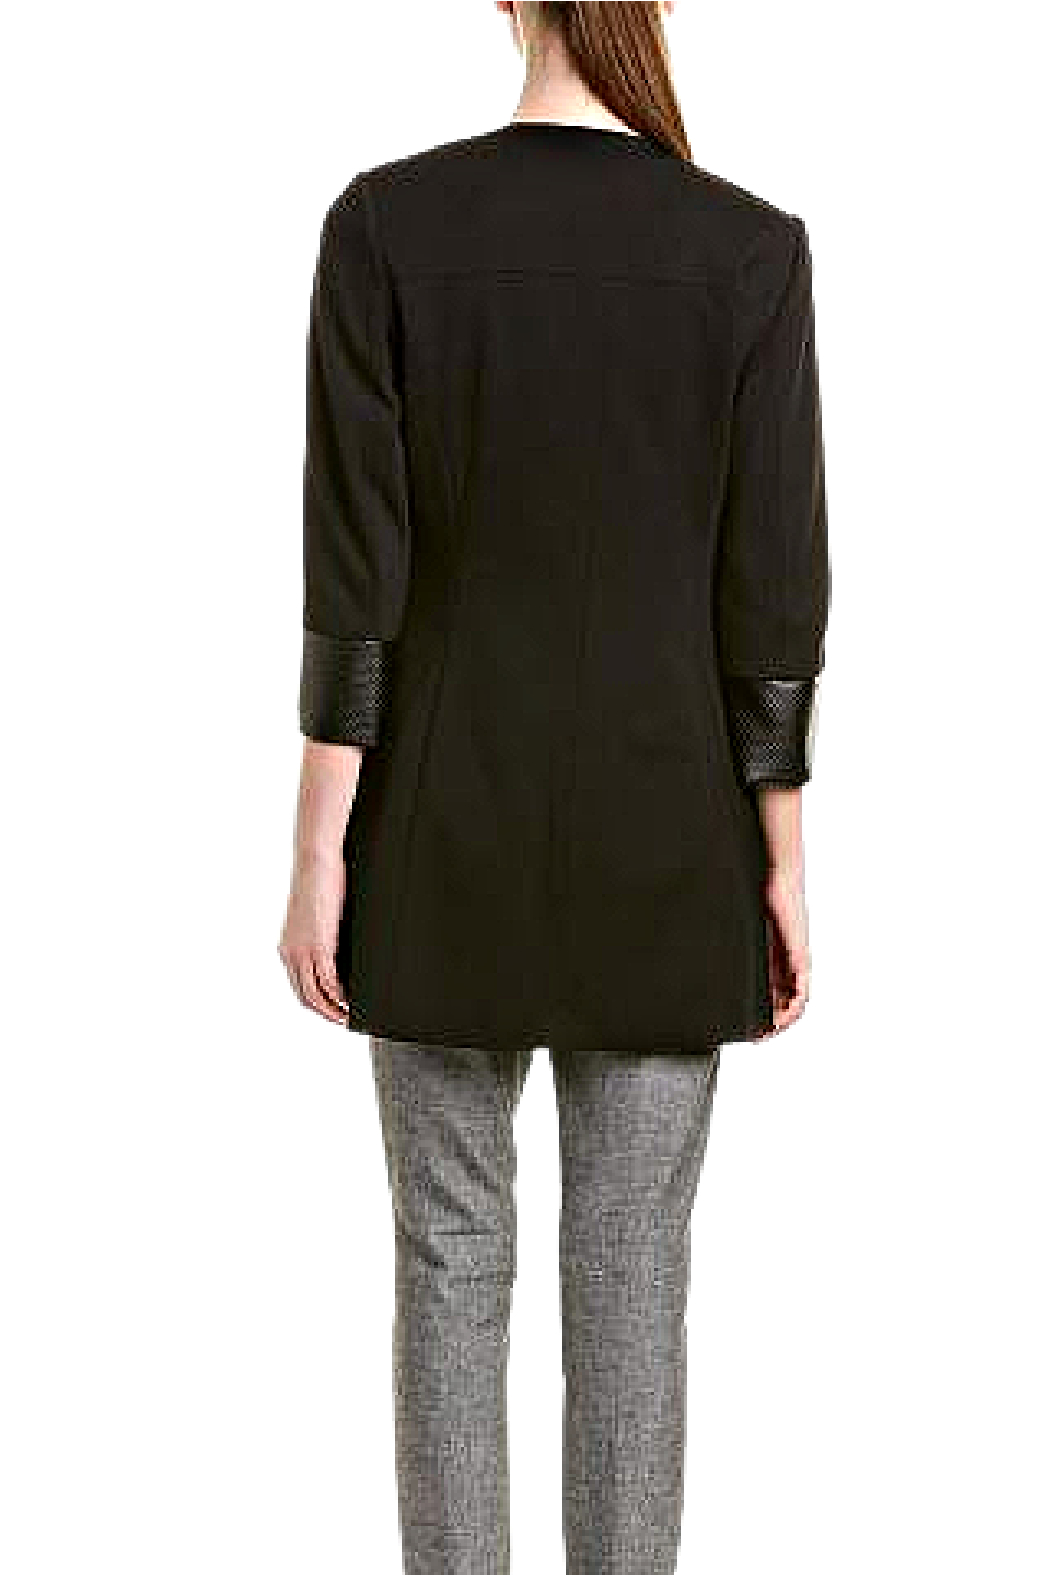 INSIGHT NYC Black Ponte Knit Car Coat - Front Full Image